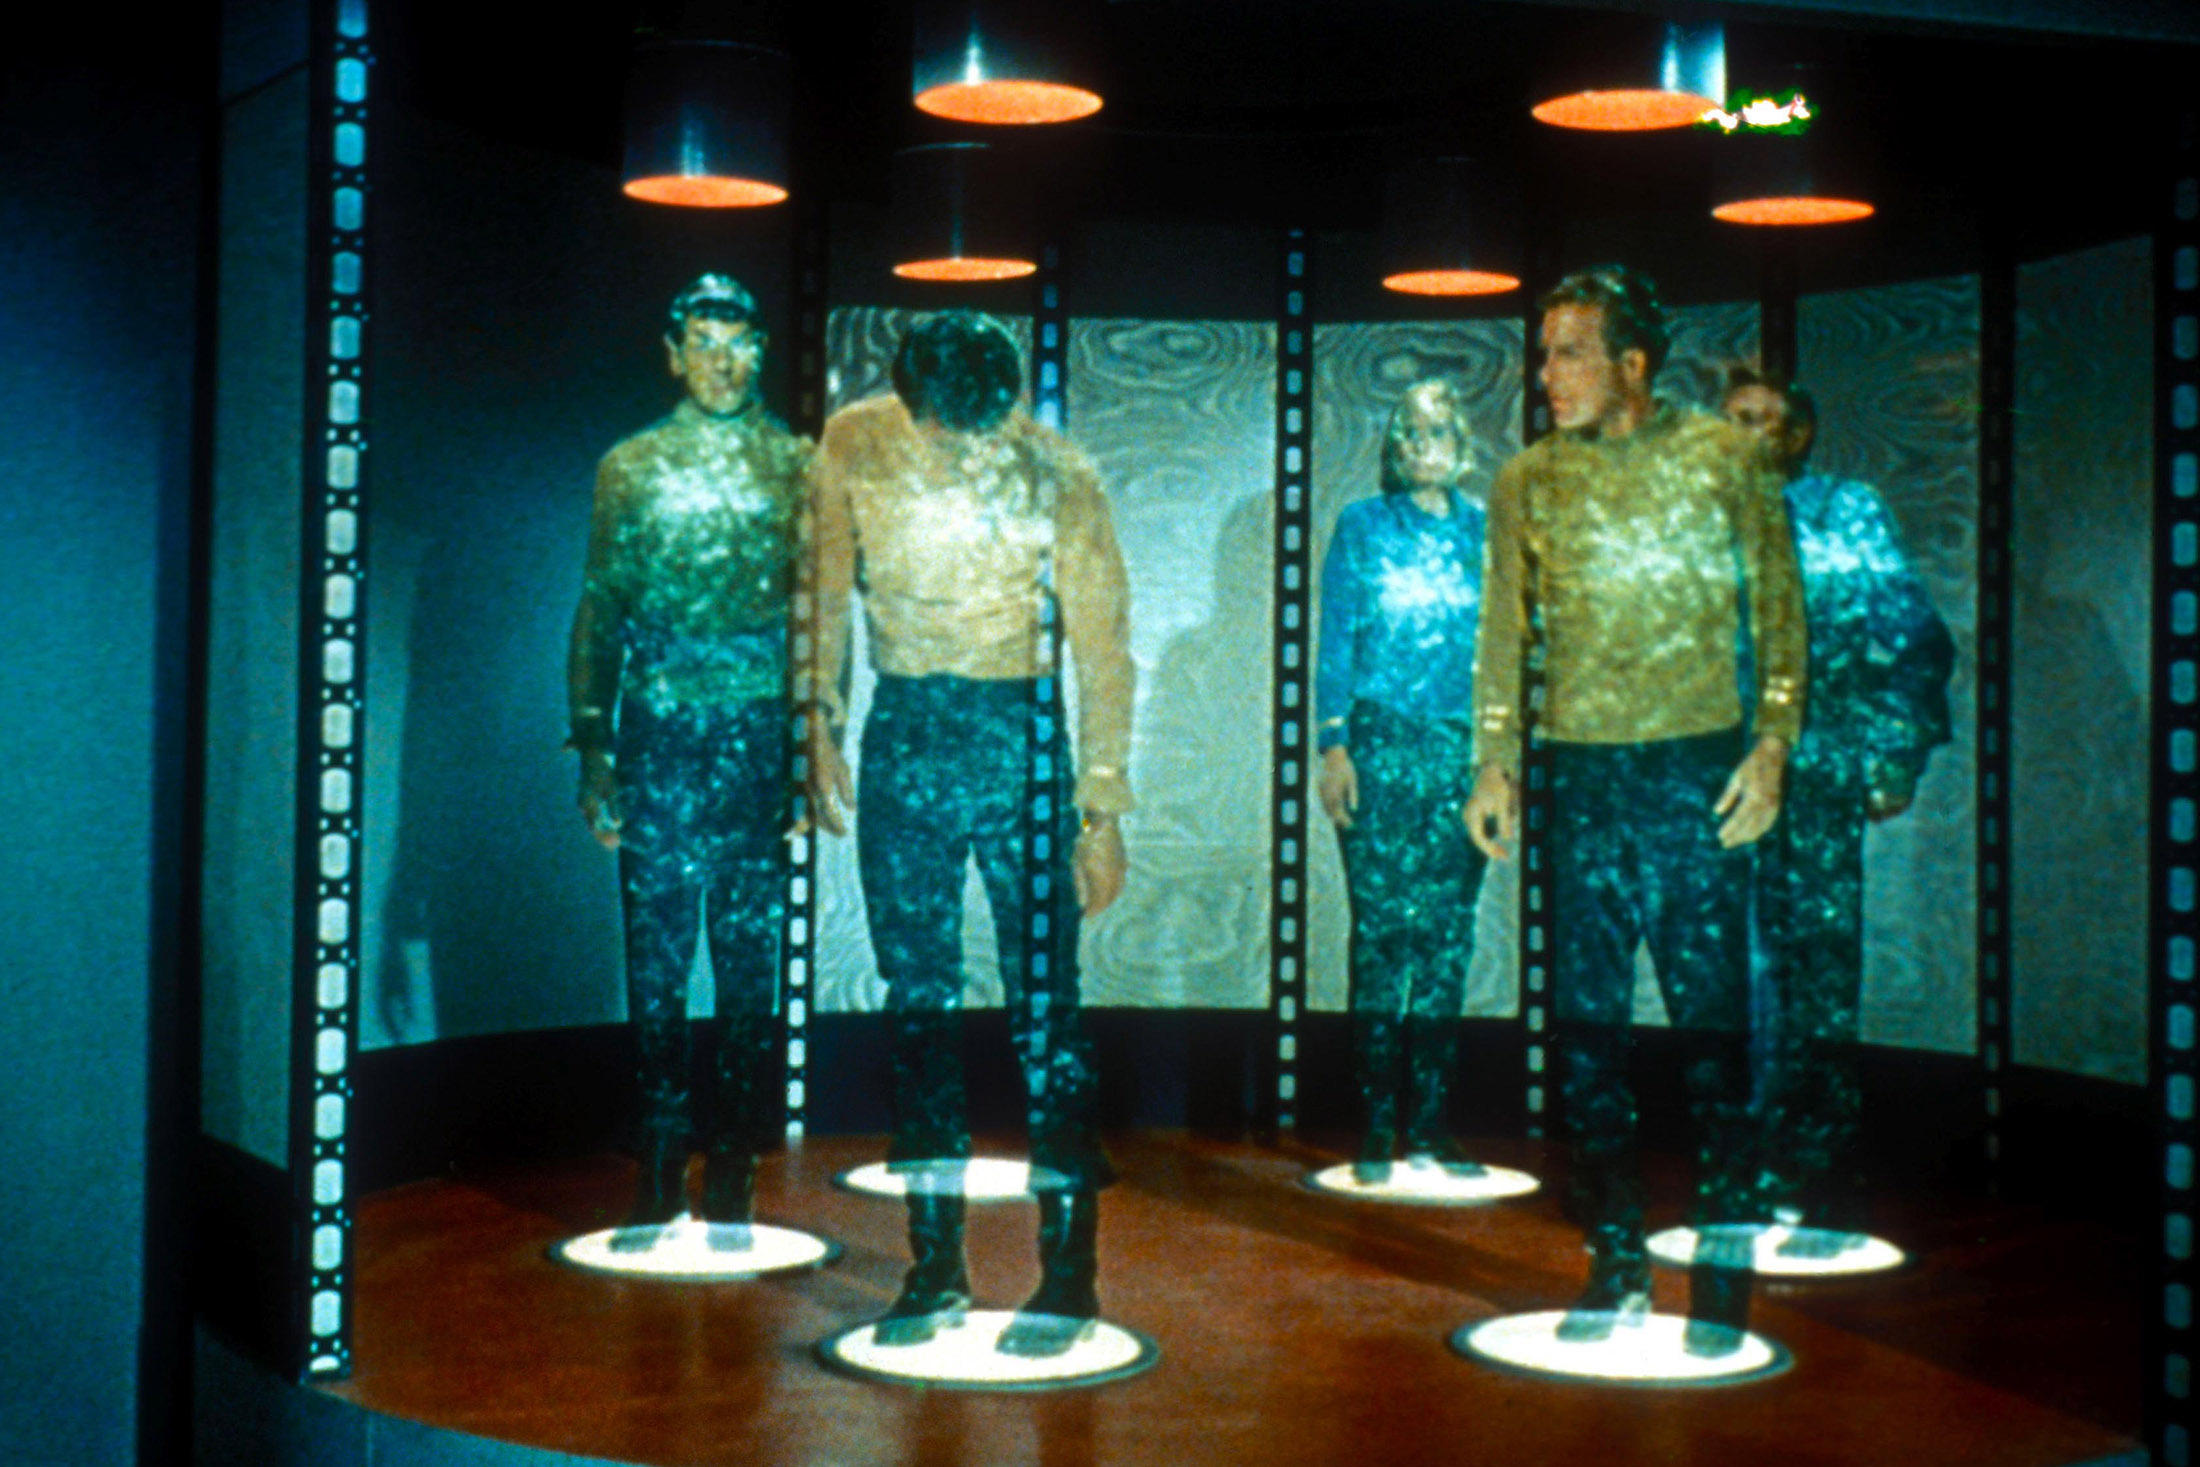 Beam Me Up? Teleporting Is Real, Even If Trekkie Transport